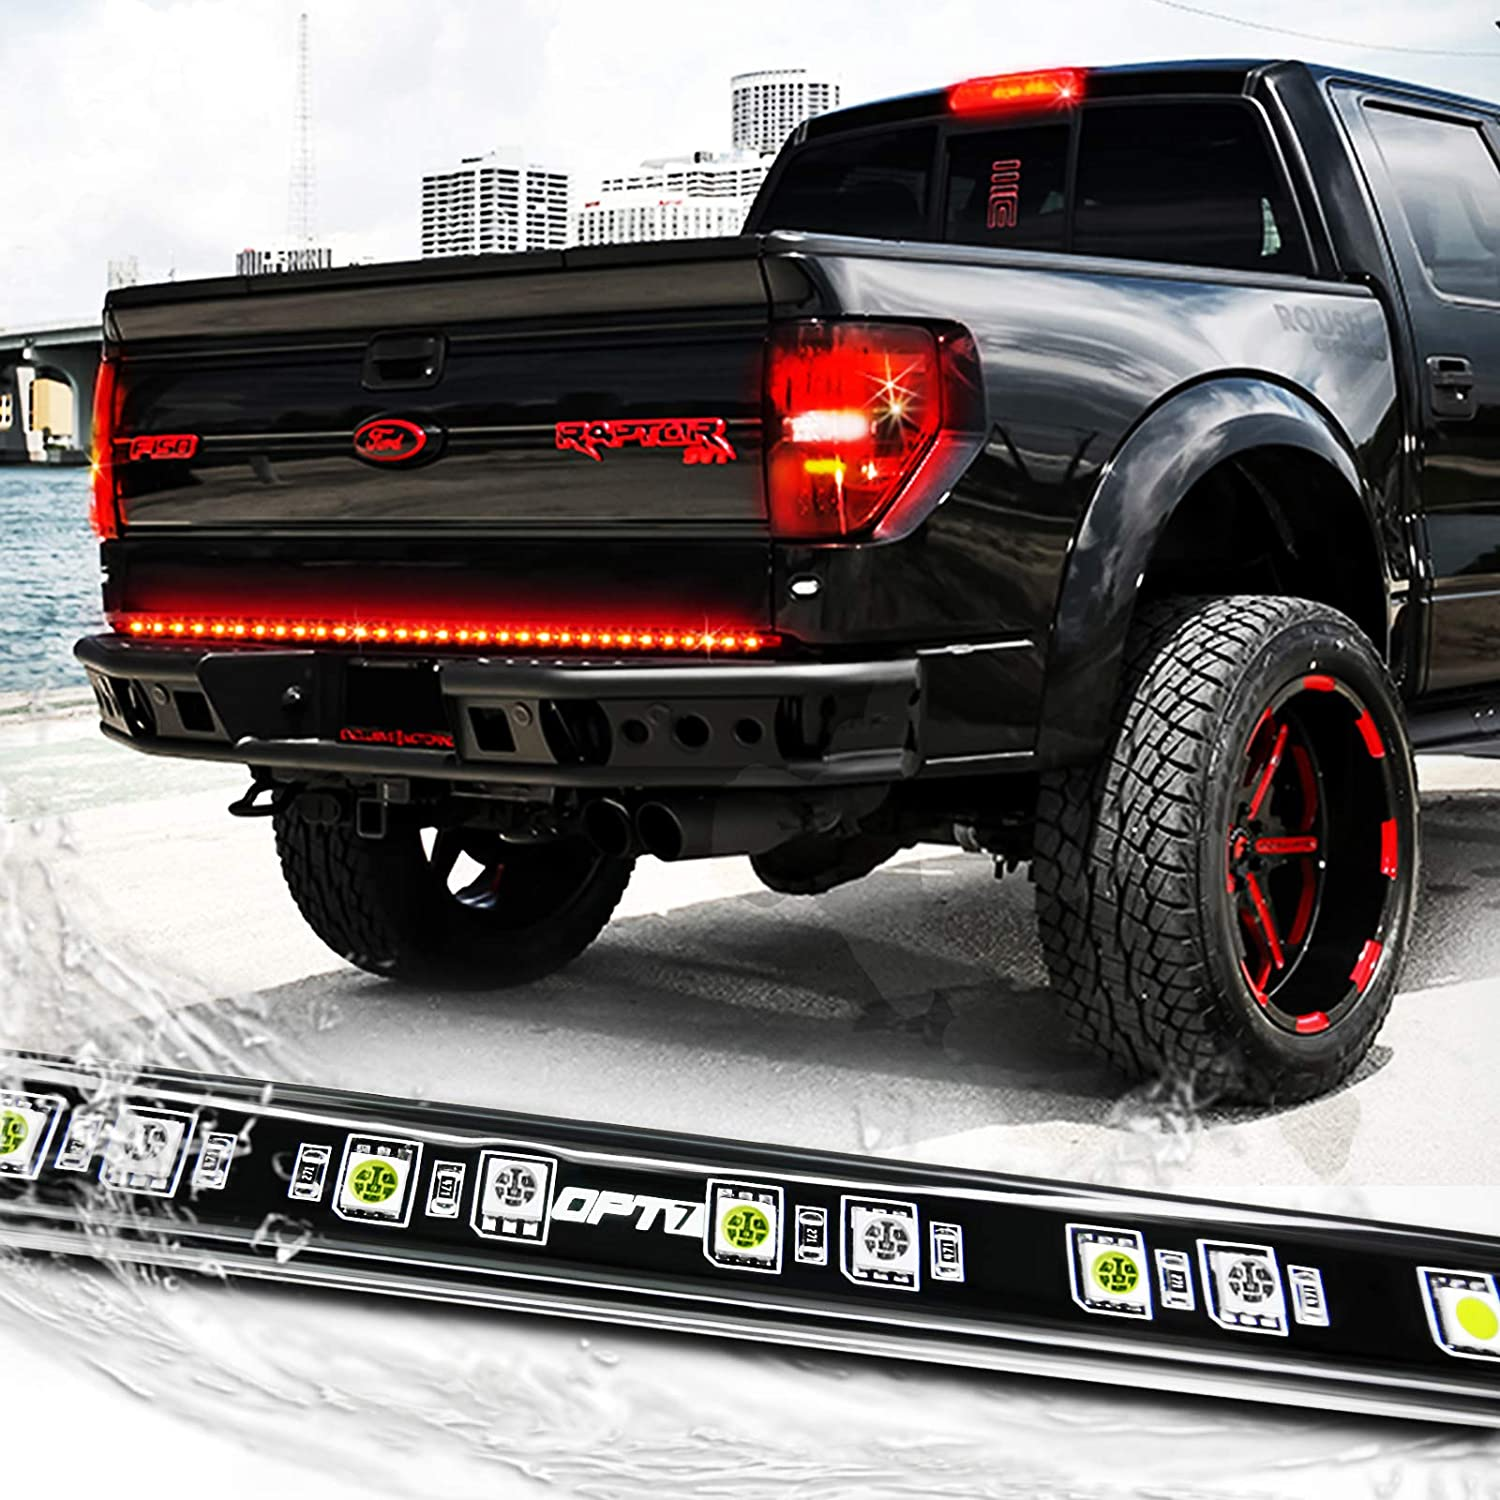 Reverse Lights for Pickup Truck SUV RV 60 inch red turn signals No Drill Install Red Turn Signal Full Function-Brake//Running ALUMINUM CASING OPL5 Triple LED Tailgate Light Bar 60 inch Waterproof